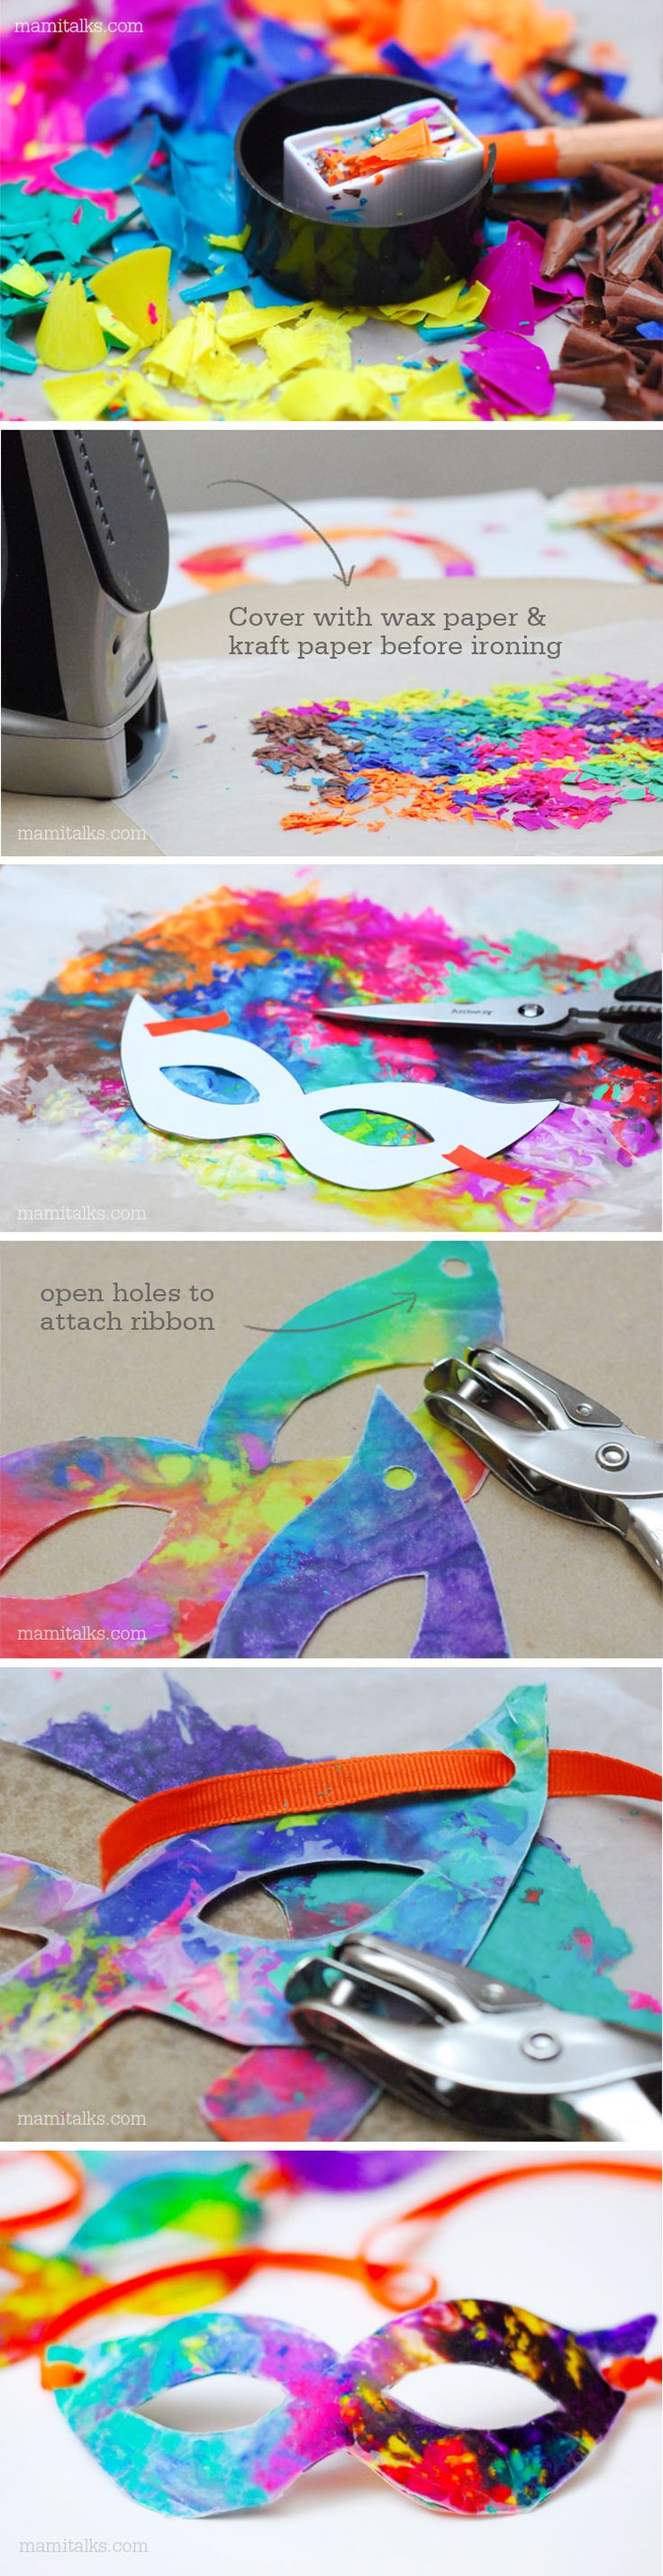 Mardi Gras crafts for kids, carnival crafts for kids